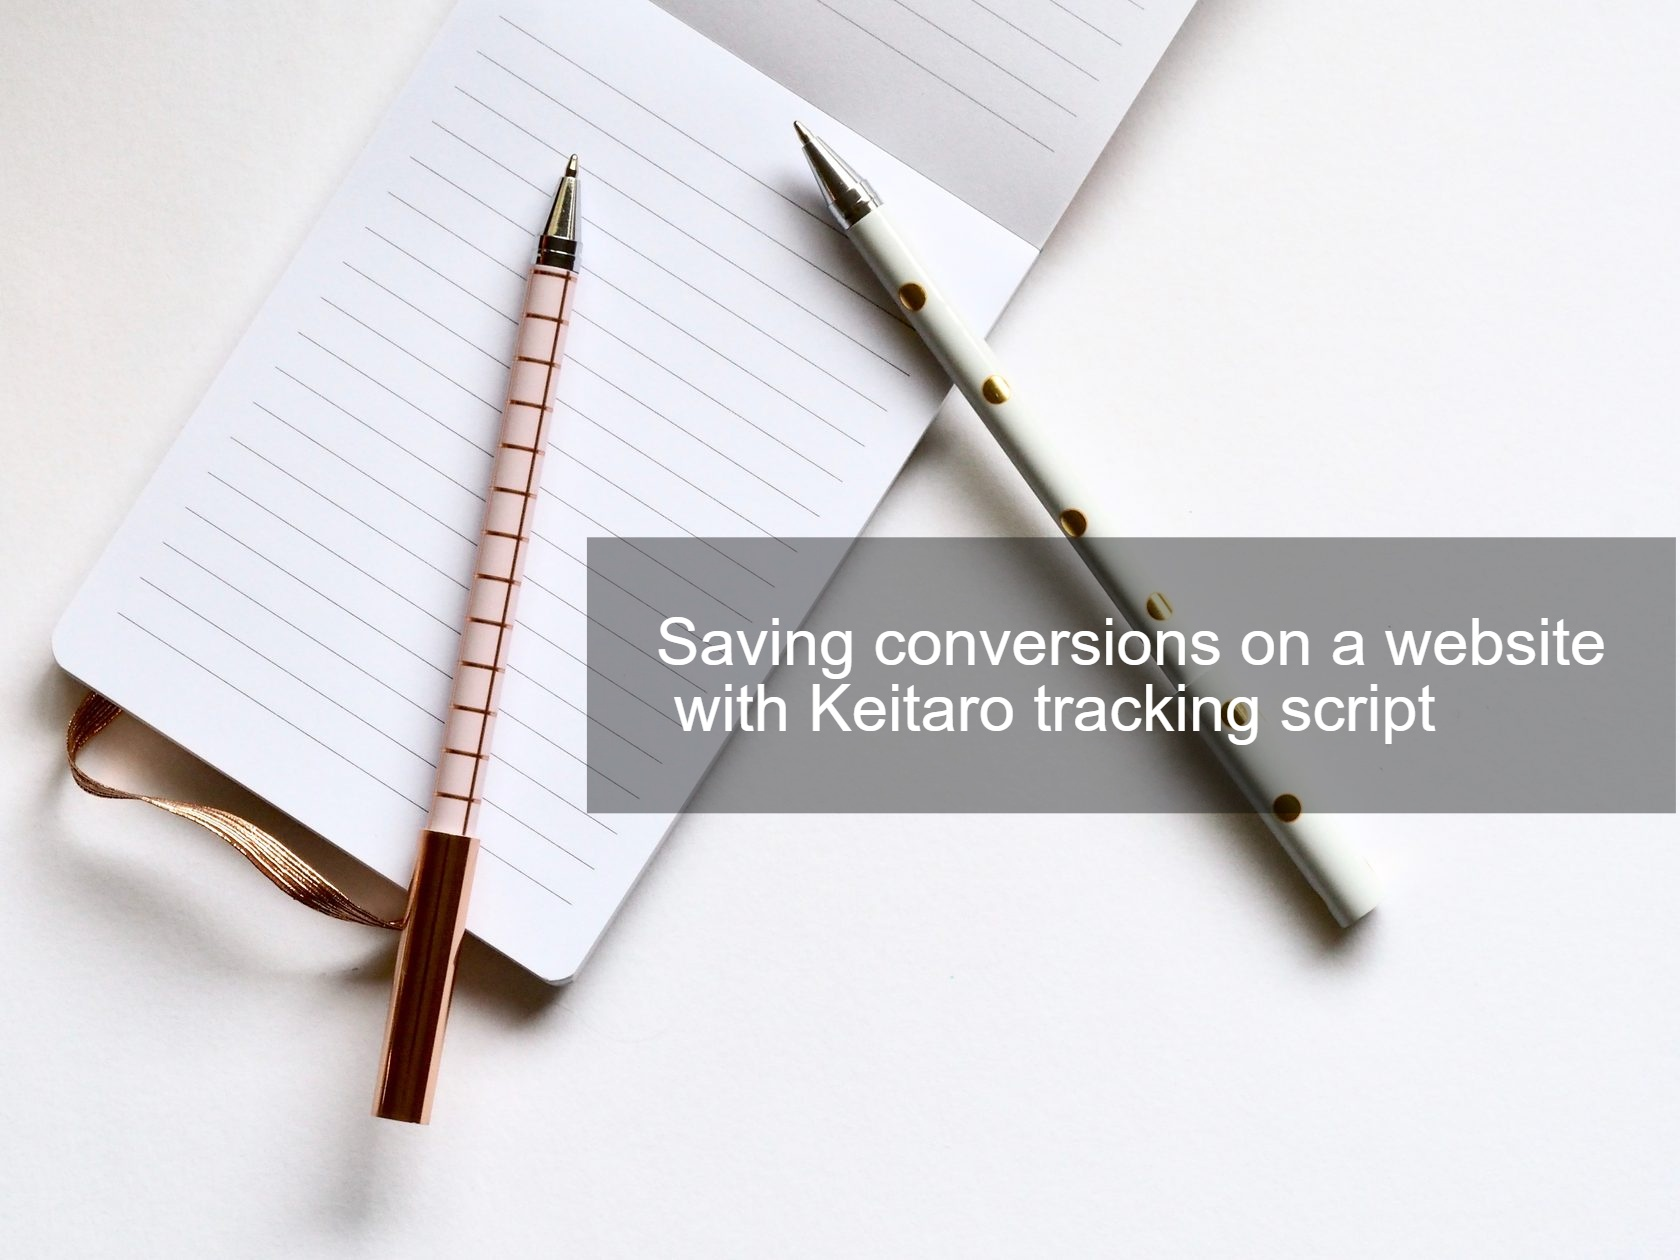 Saving conversions on a website with a tracking script and an order form